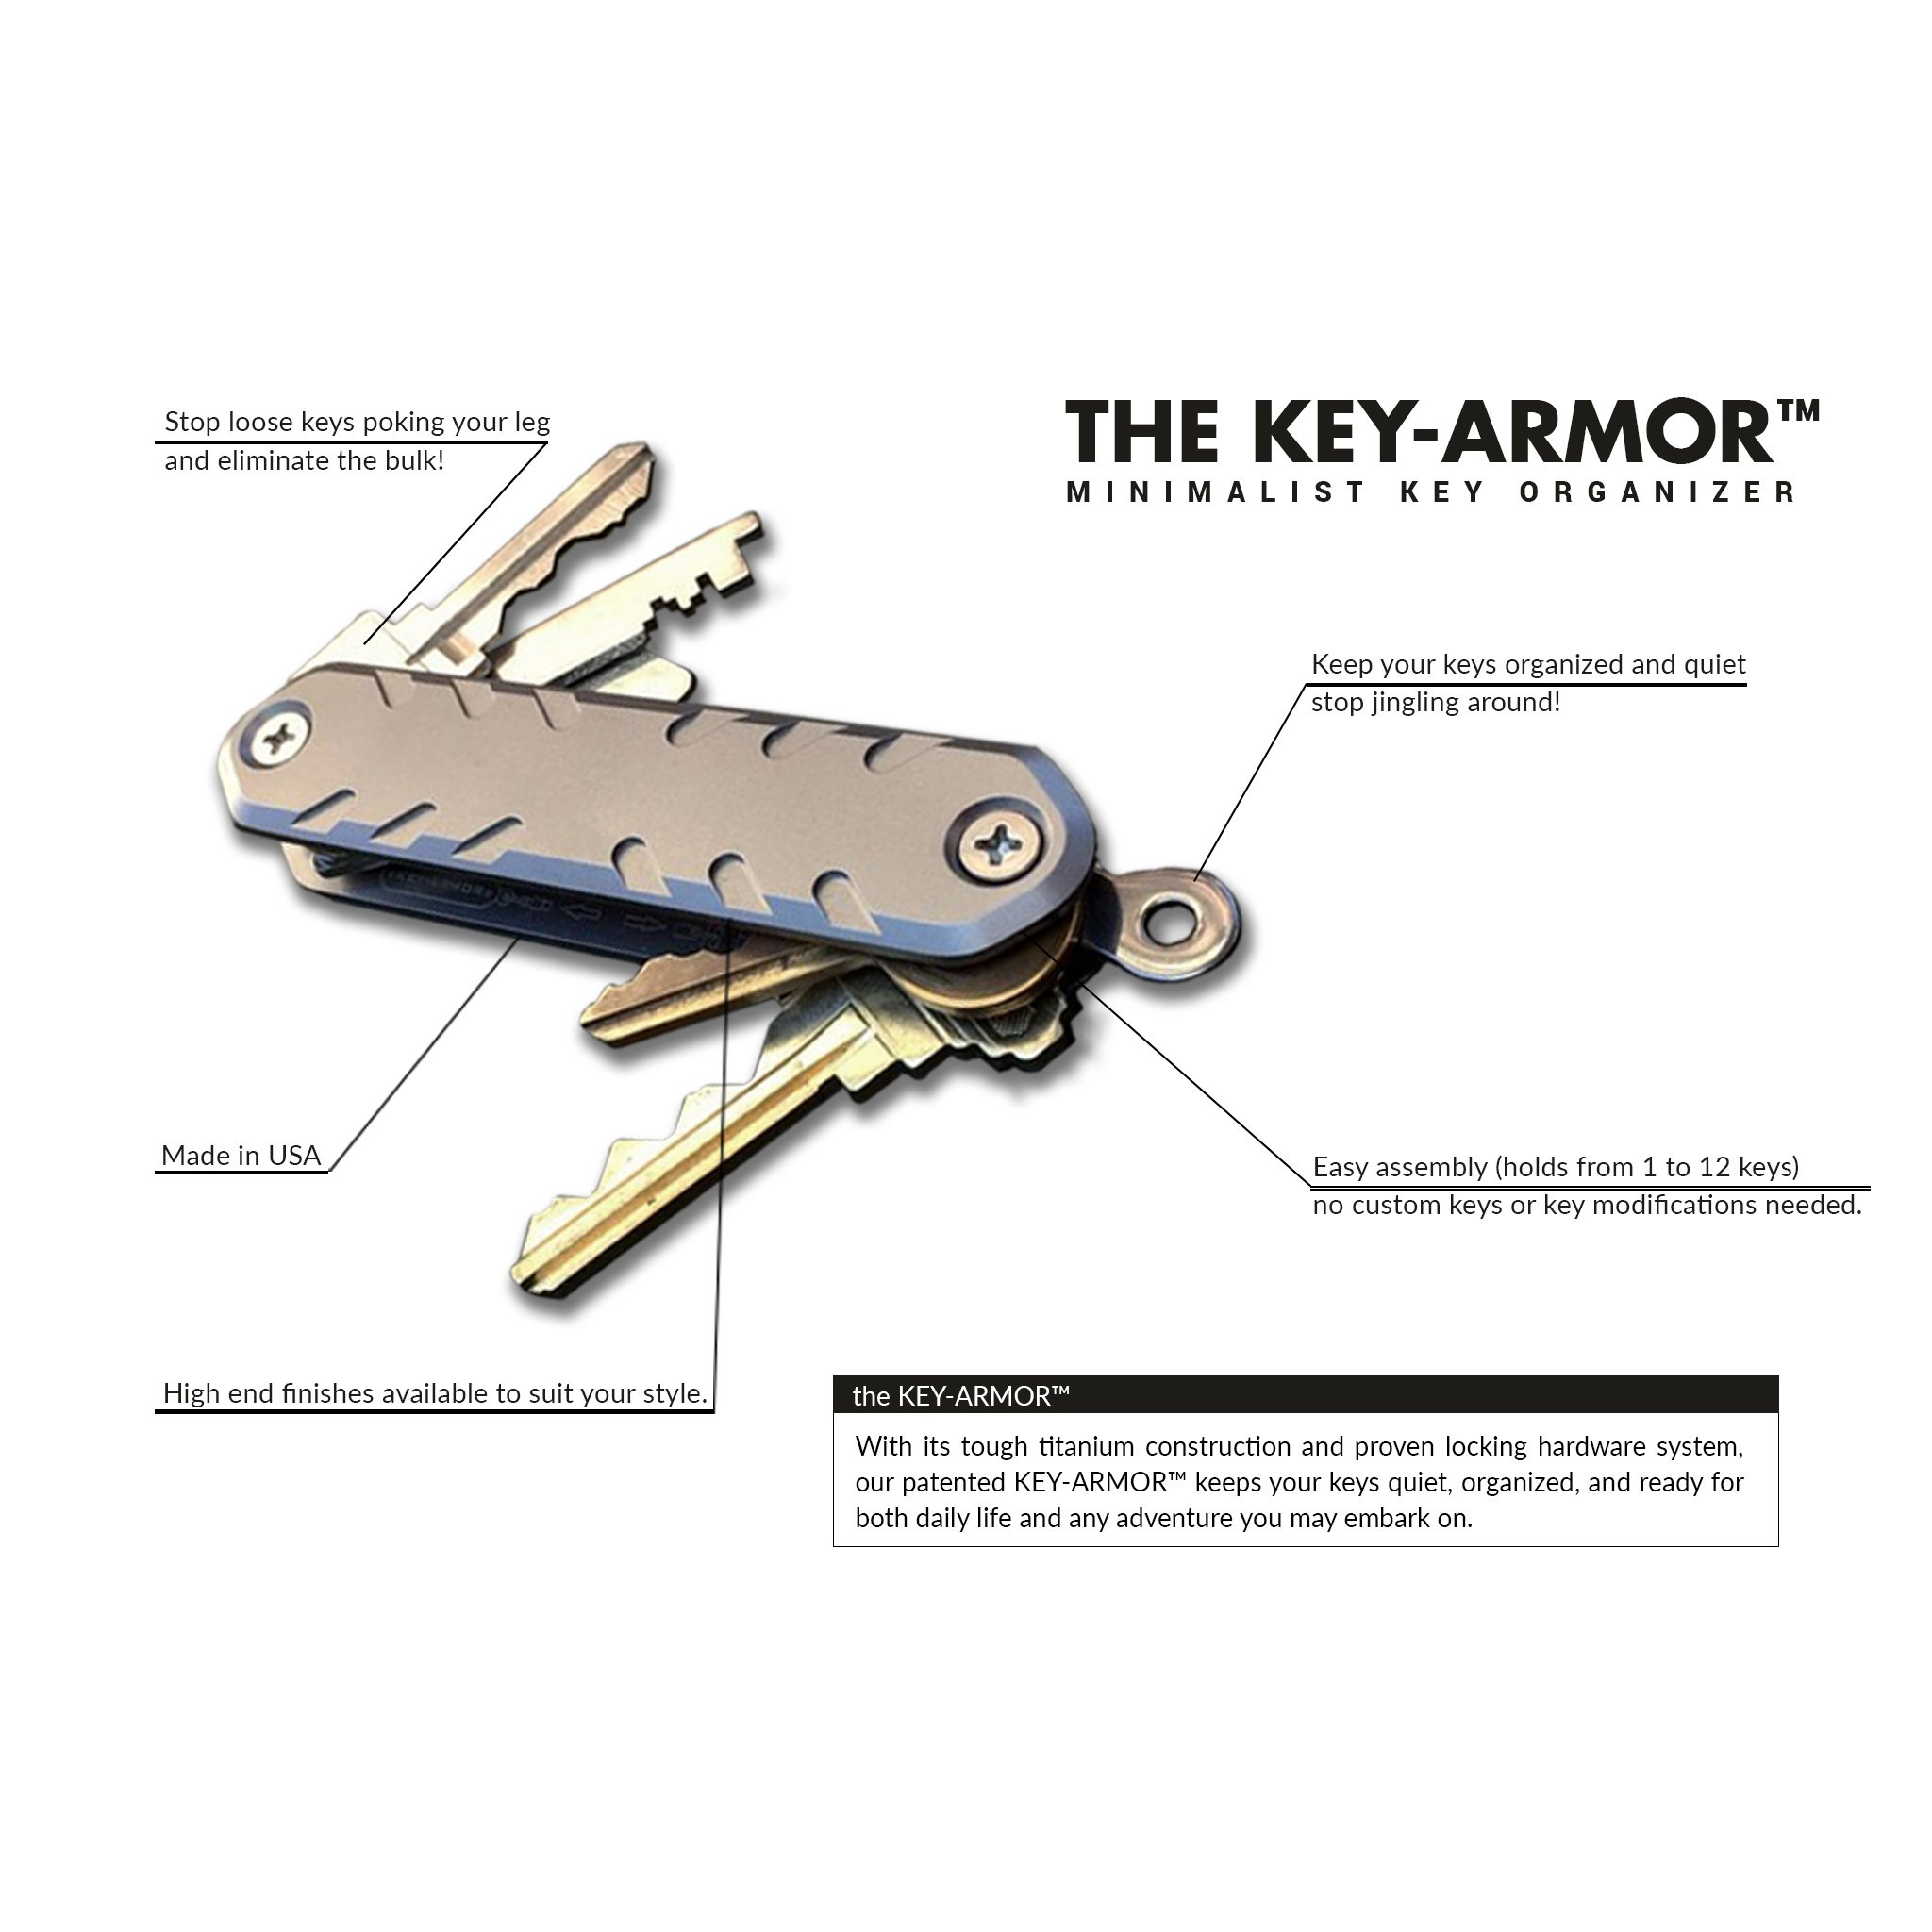 KEY-ARMOR features